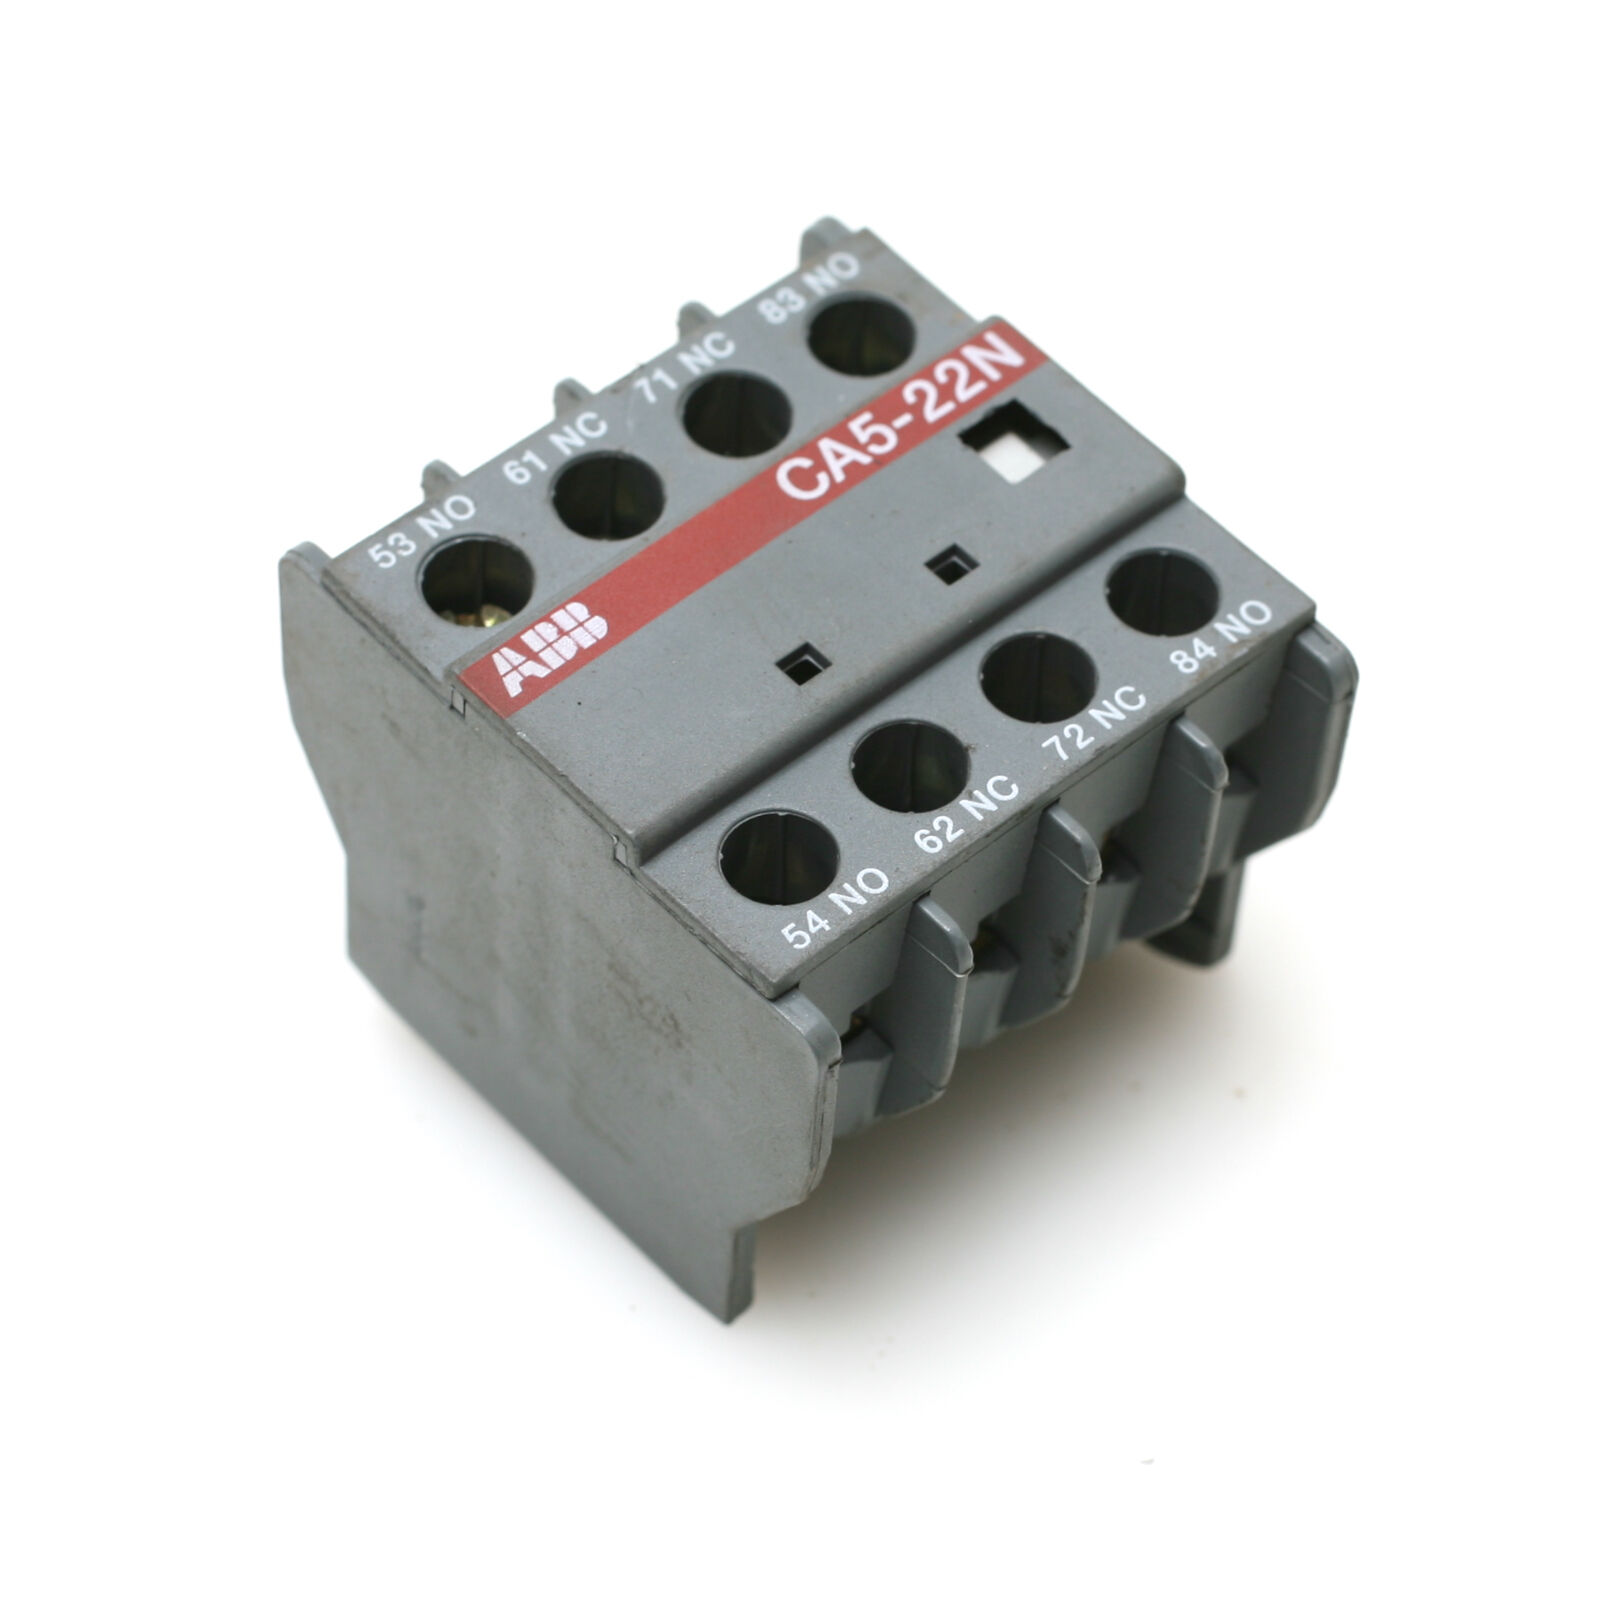 Abb Ca5 22n Relay Auxiliary Contact Block 1995 Picclick With No And Nc Contacts 1 Of 3only 4 Available